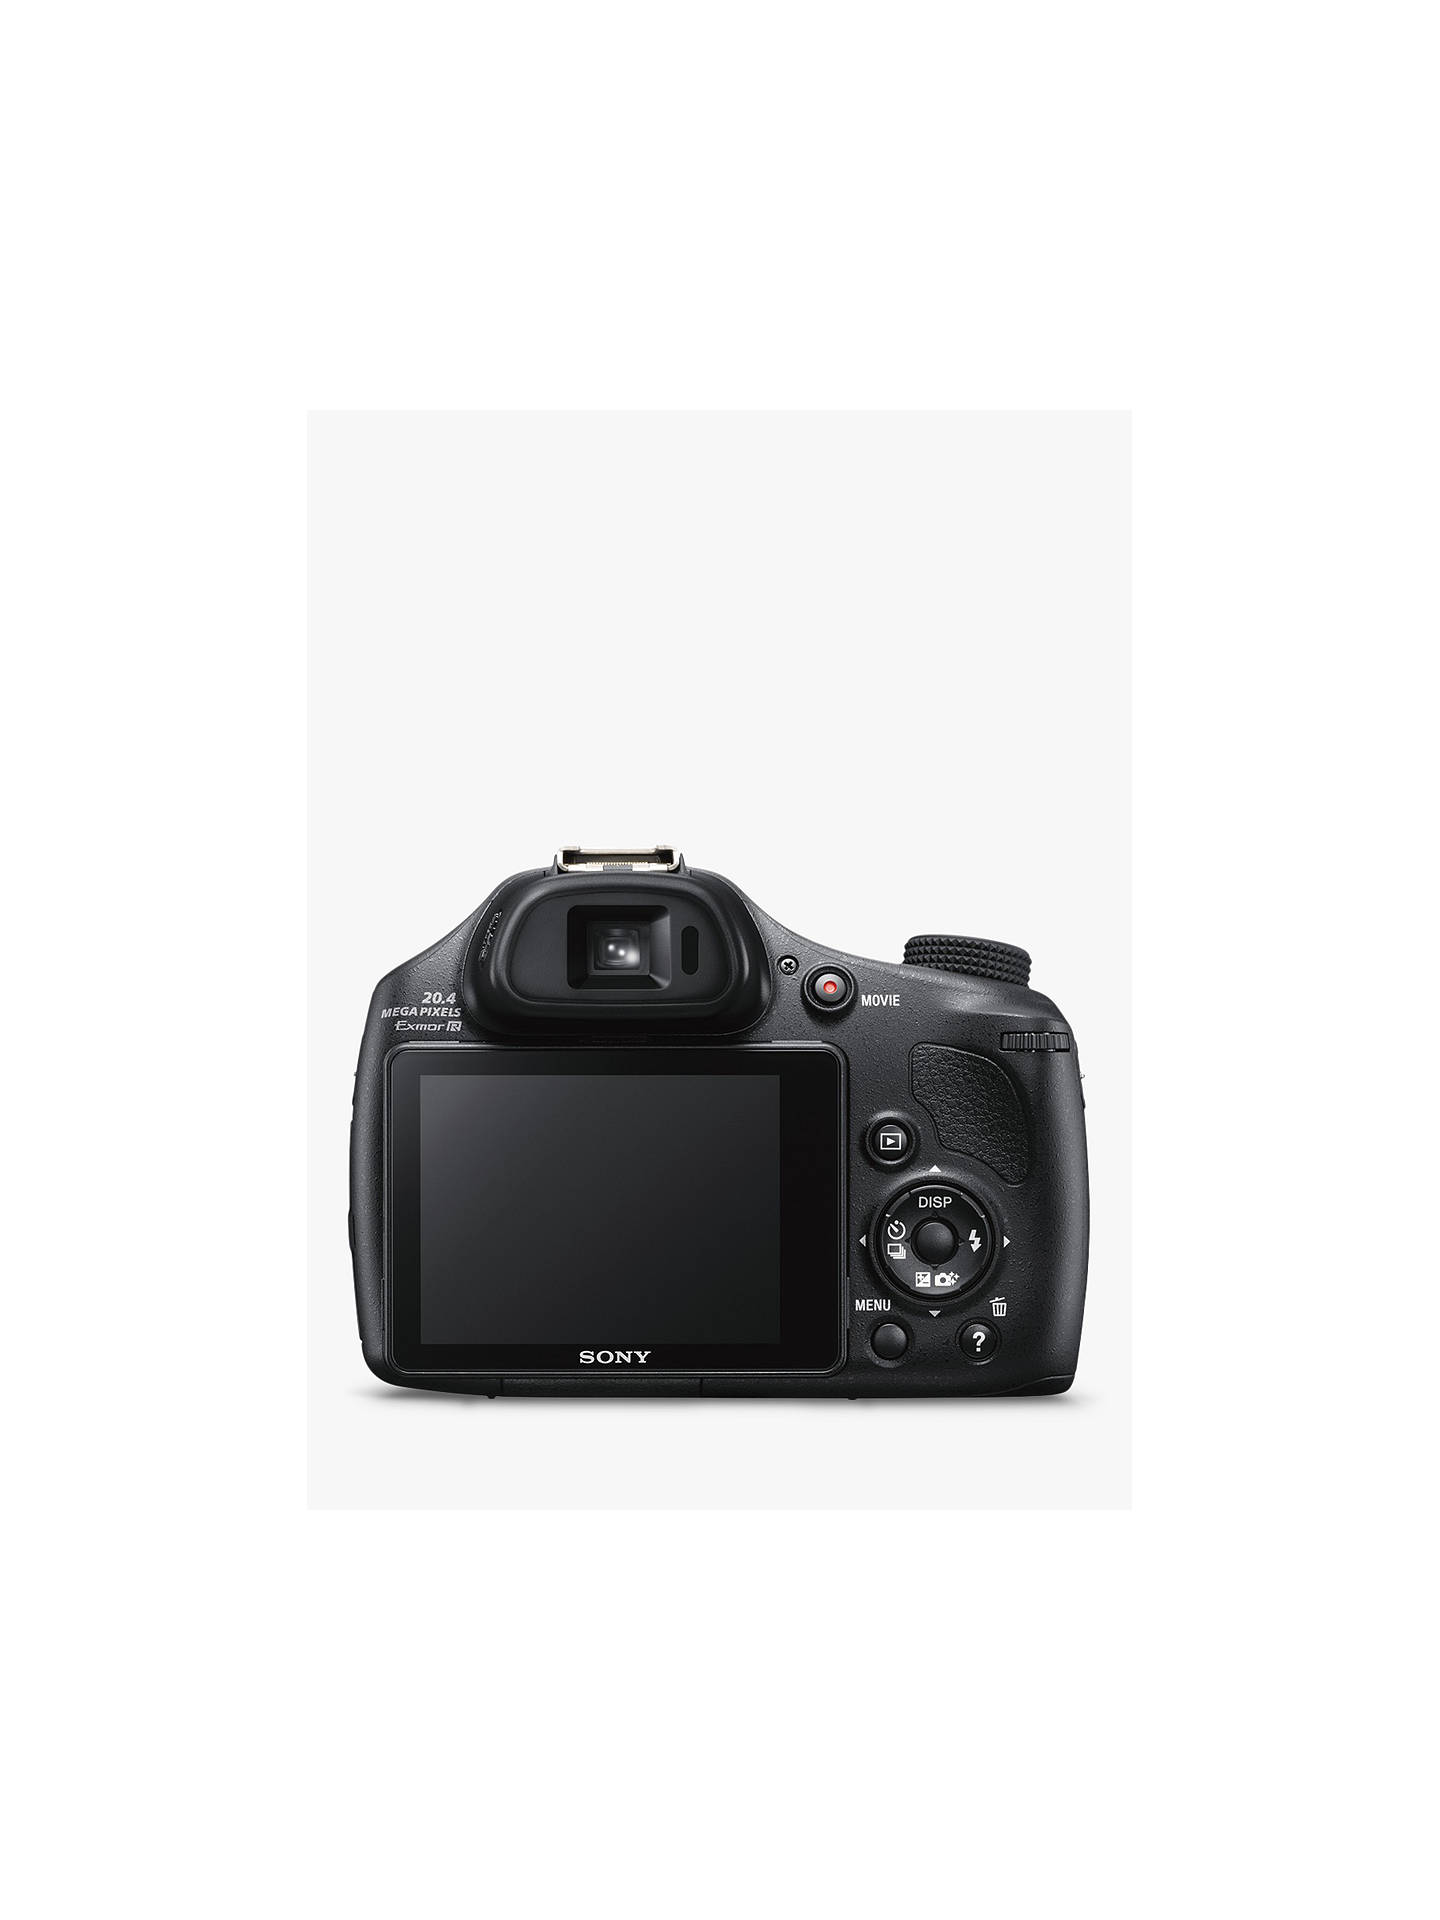 "Sony Cyber-shot DSC-HX400 Smart Bridge Camera, HD 1080p, 20 4MP, 50x  Optical Zoom, 200x Digital Zoom, Wi-Fi, NFC, GPS, 3"" LCD Screen"